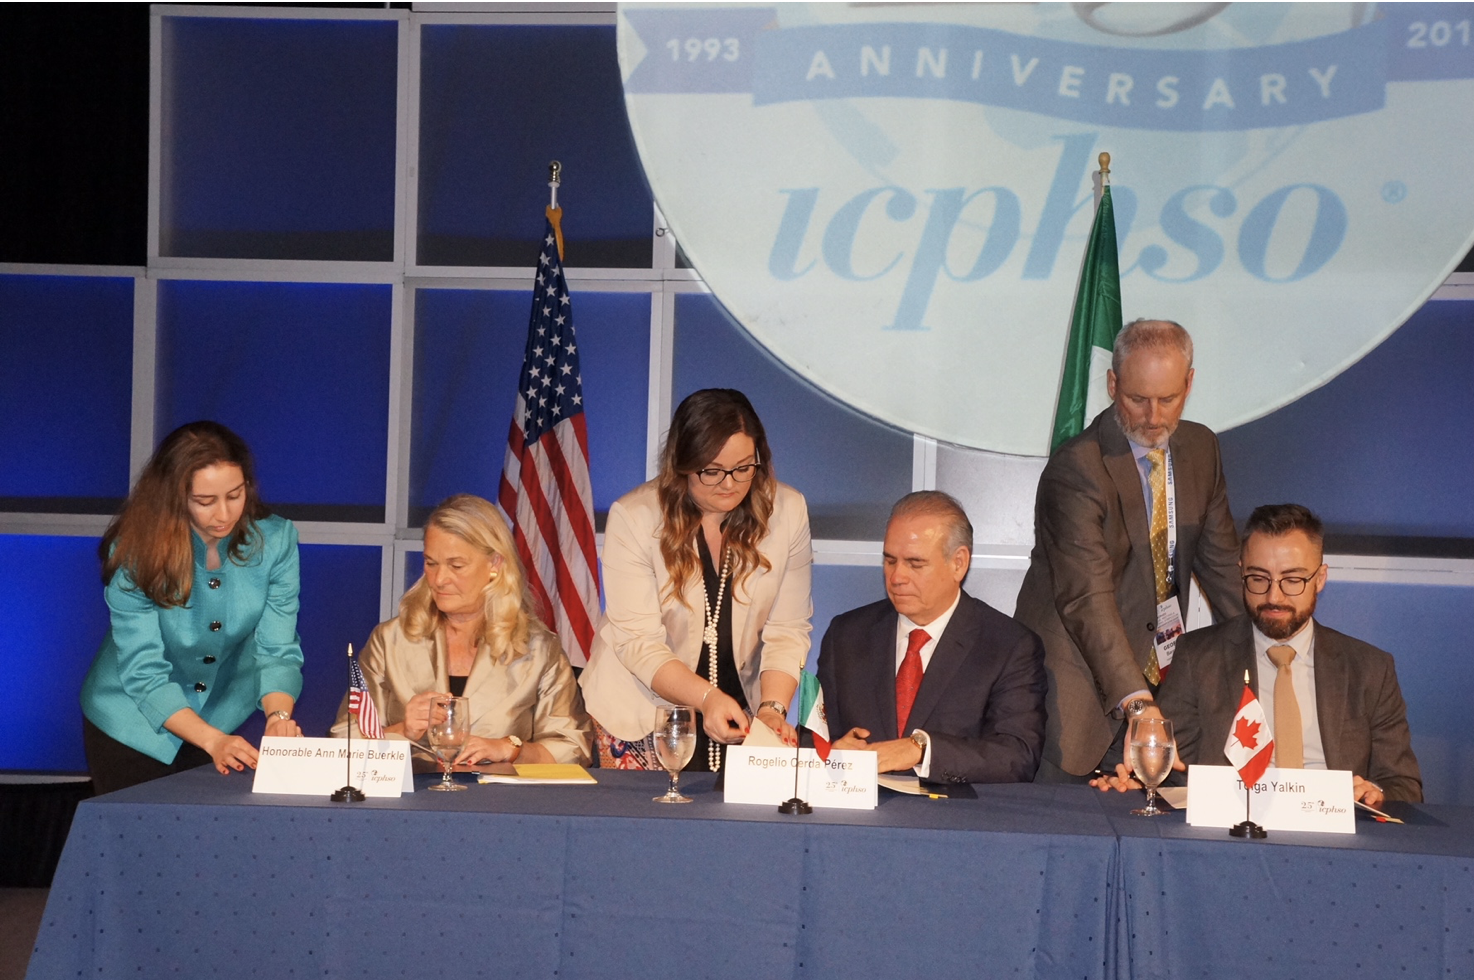 North America Product Safety Regulators Agree to Increase Cooperation on Consumer Product Safety; Trilateral MOU Signed at Annual Meeting of Multi-Stakeholder Association